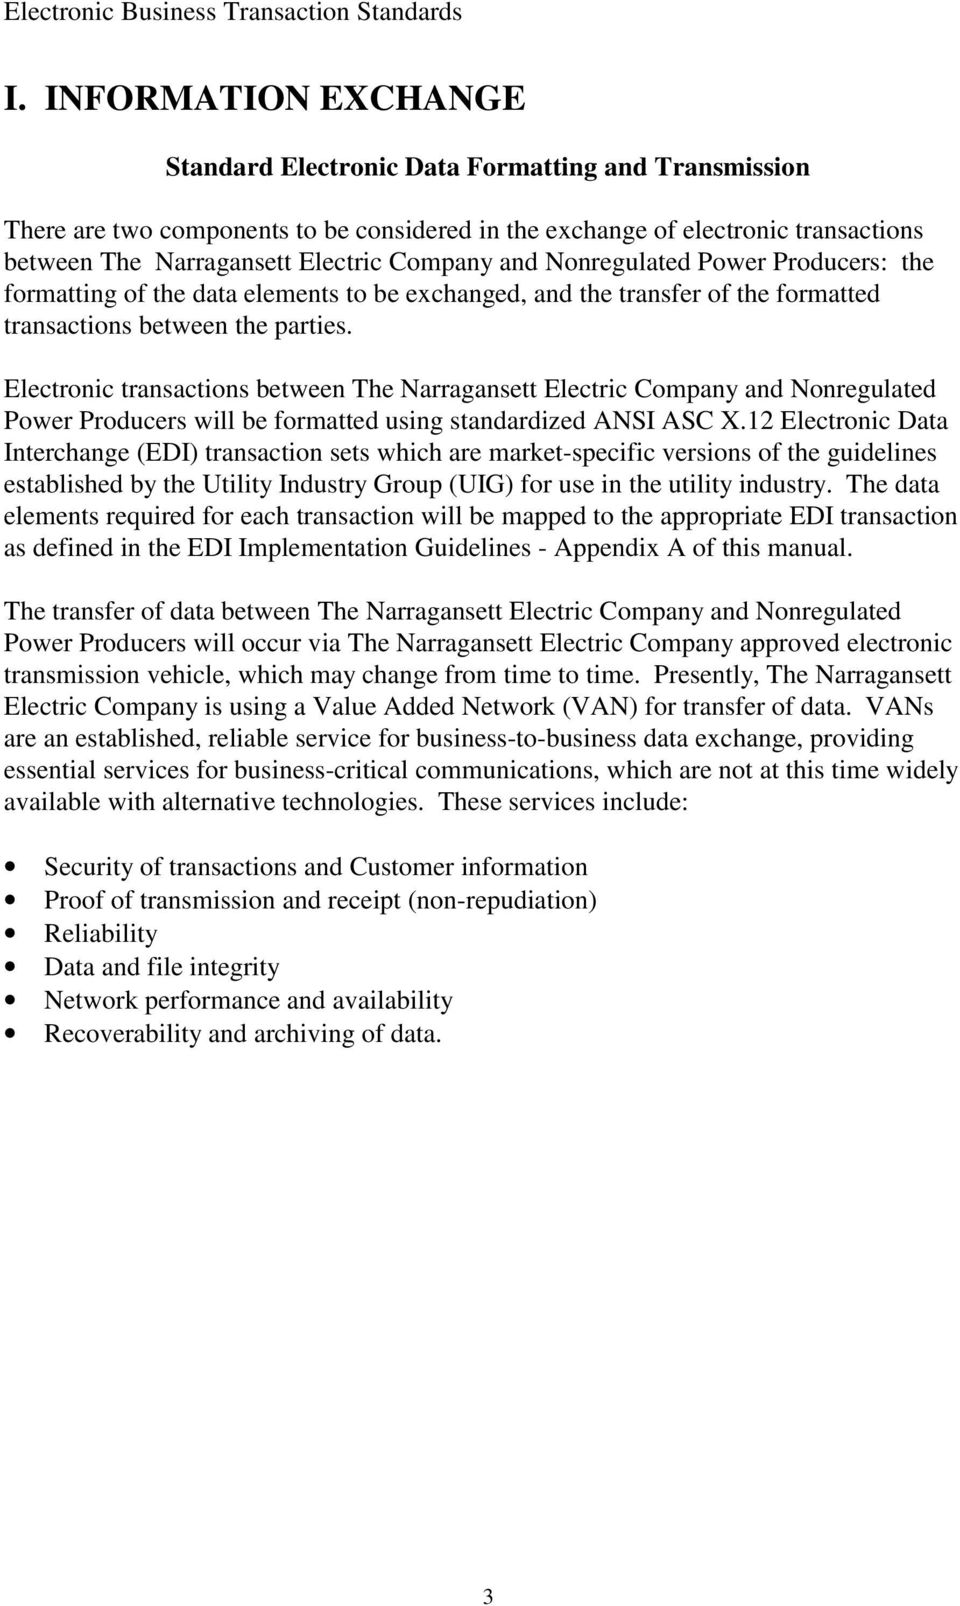 Electronic transactions between The Narragansett Electric and Nonregulated Power Producers will be formatted using standardized ANSI ASC X.